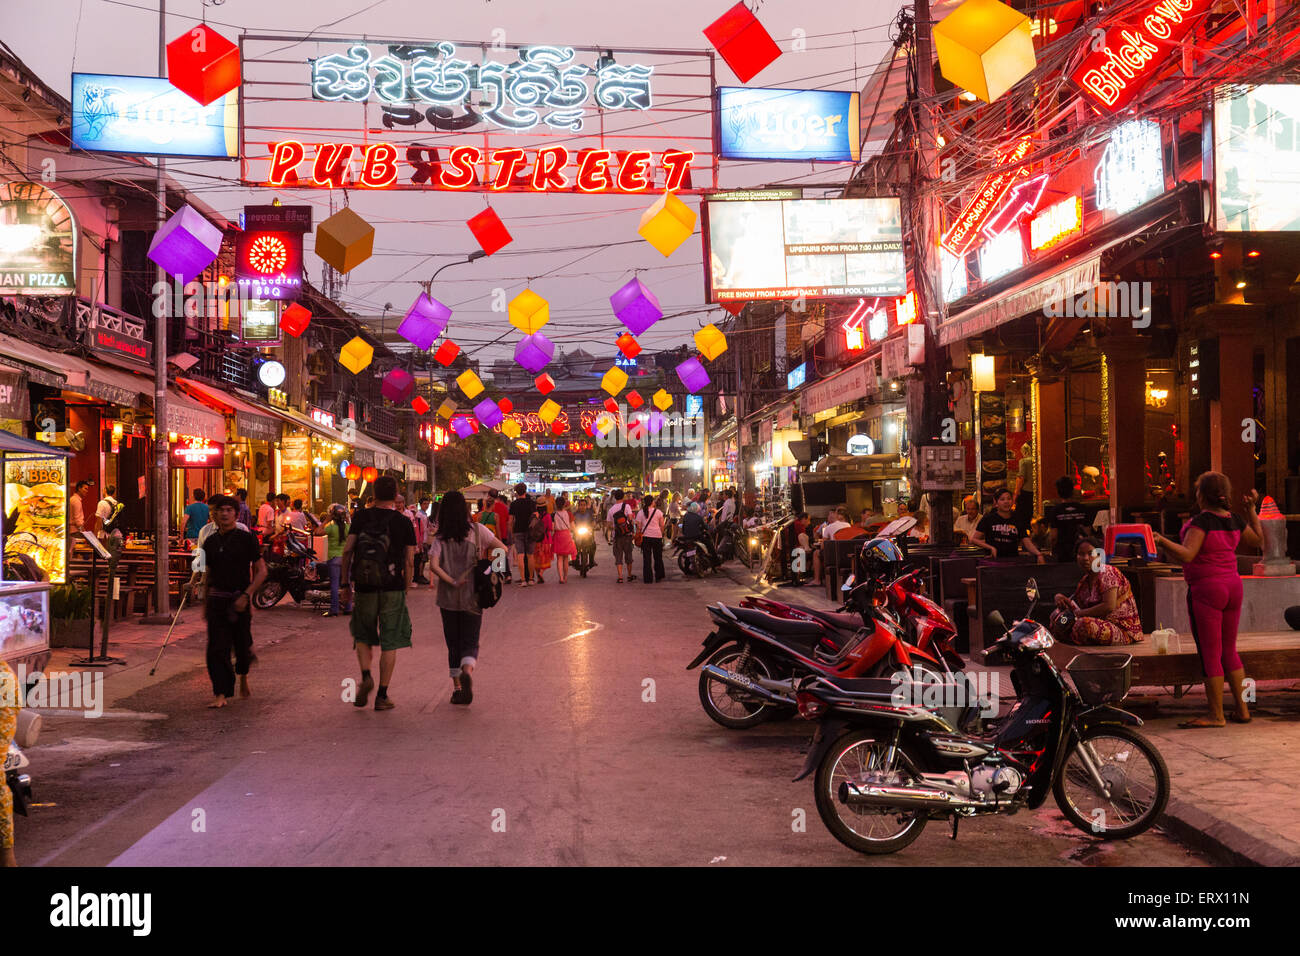 Pub Street at night, nightlife, Angkor, Siem Reap, Cambodia - Stock Image